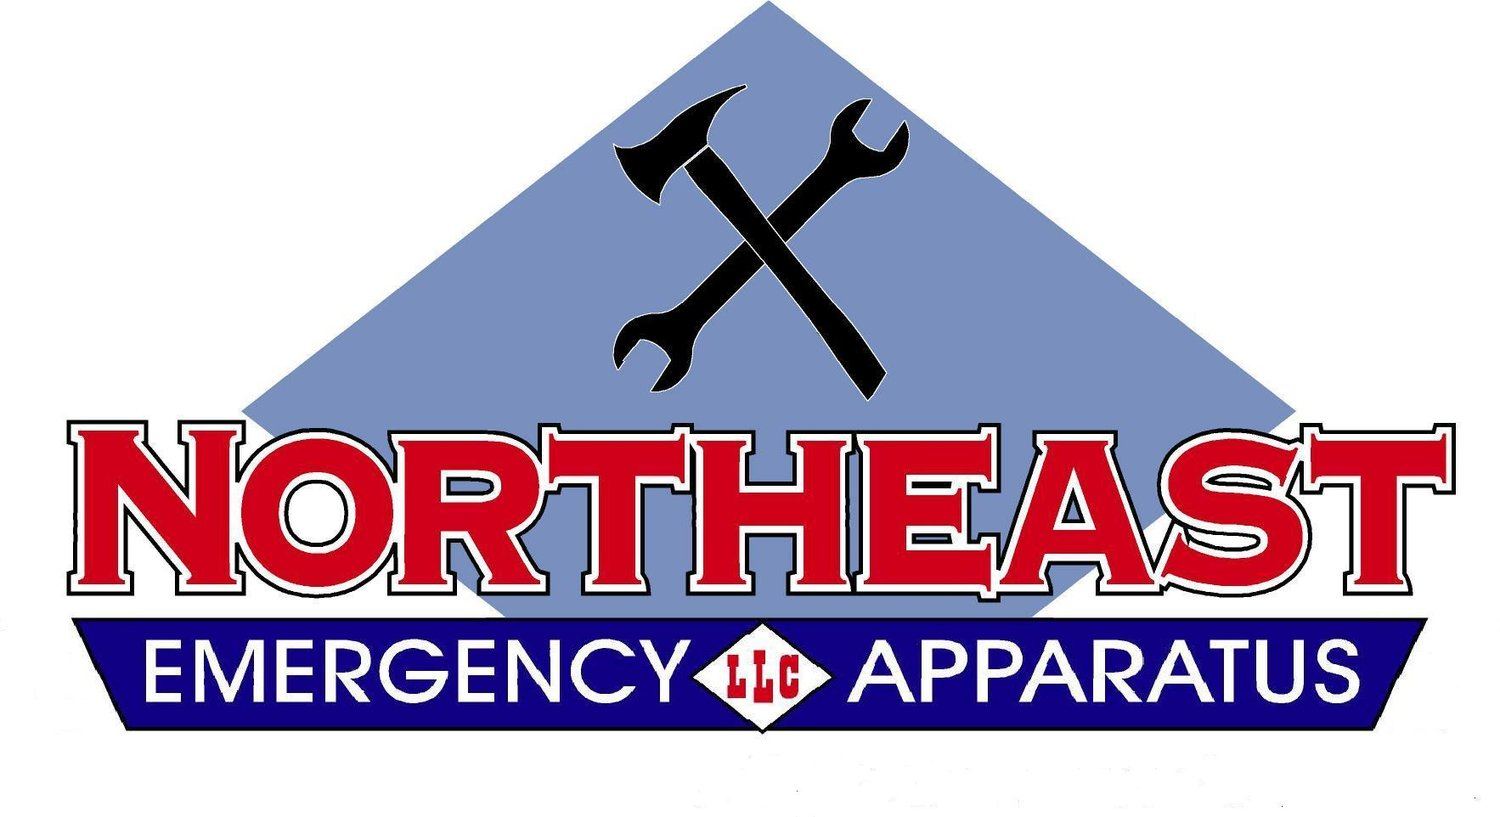 Northeast Emergency Apparatus LLC